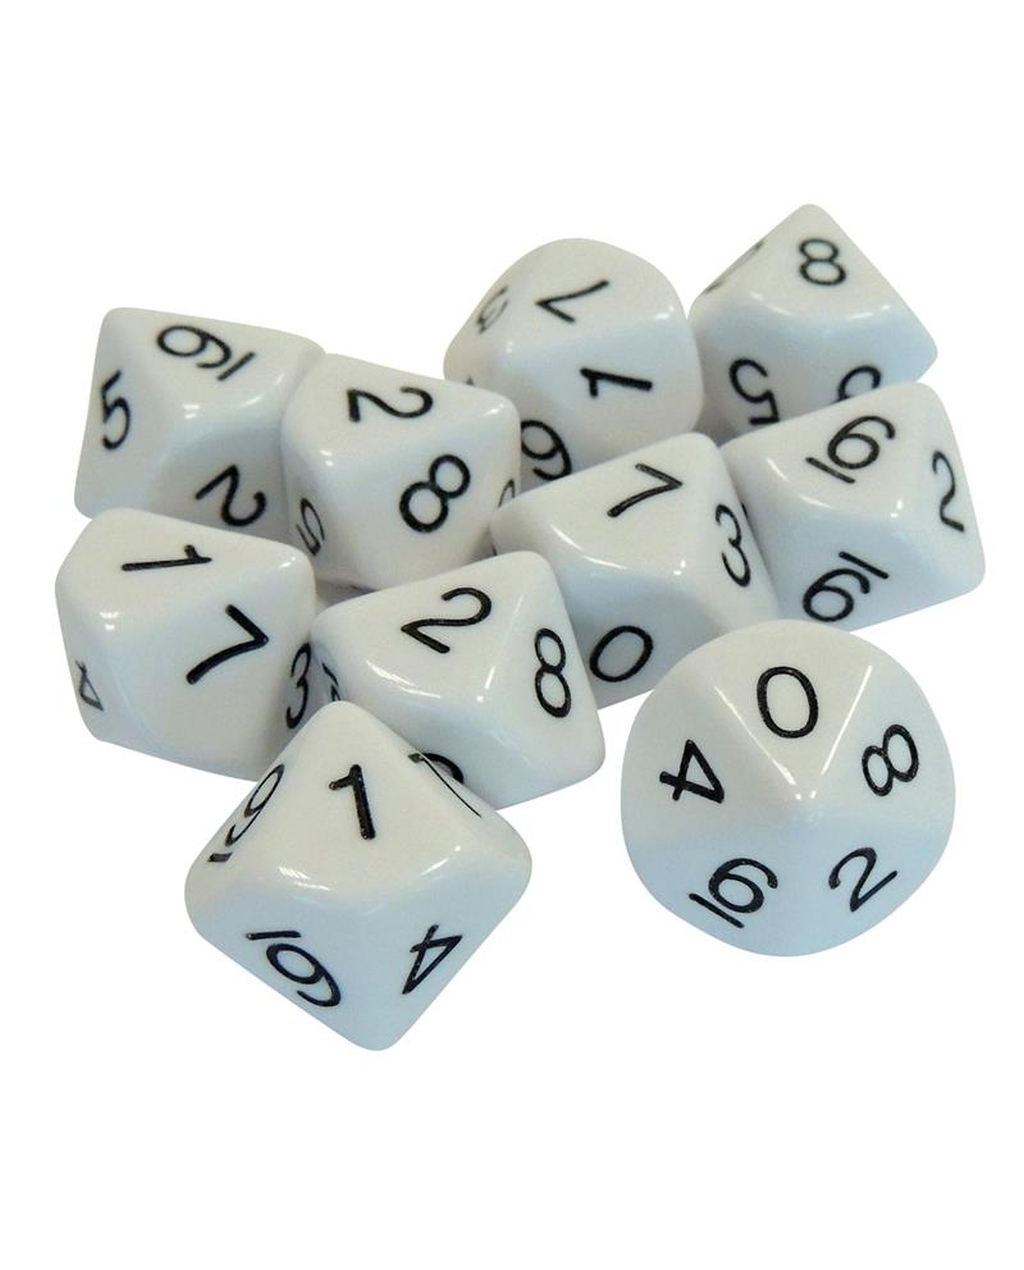 10 Sided Numbered Dice (0-9)